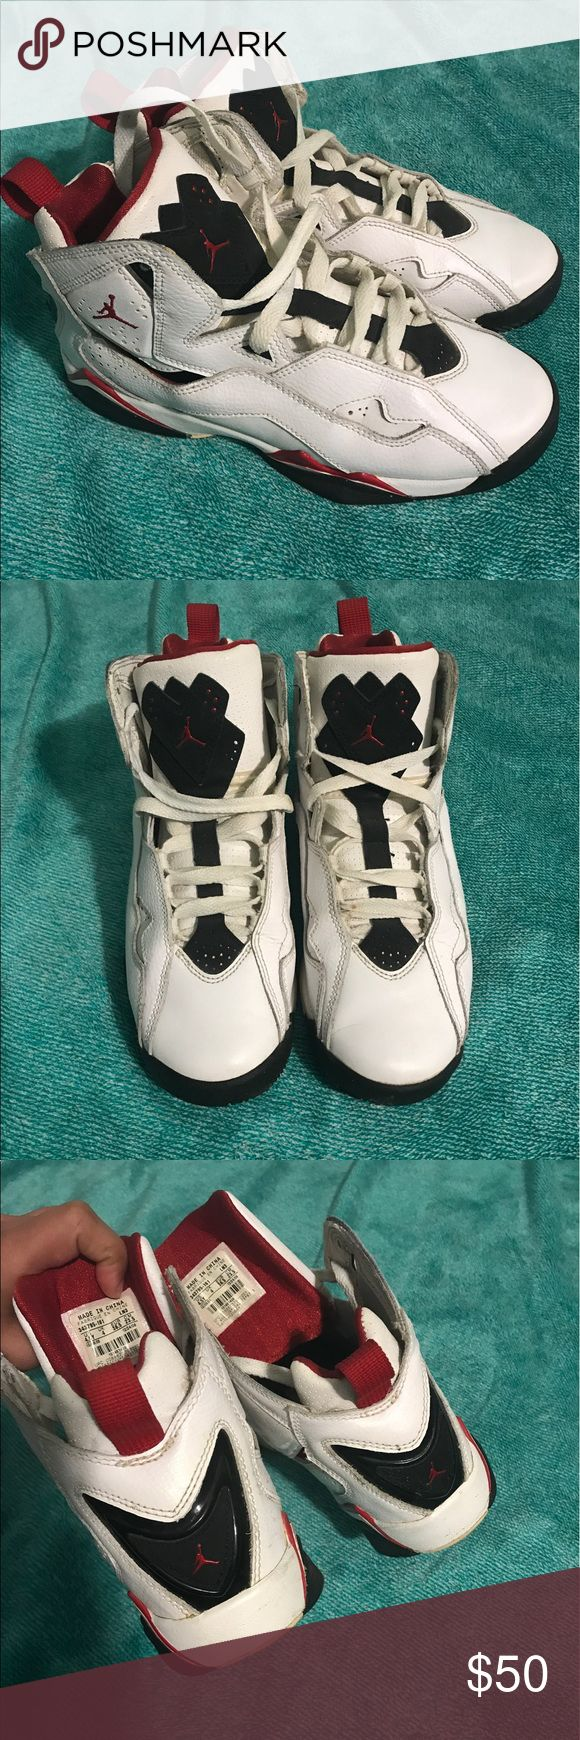 Jordans True Flight In great condition, any questions feel free to ask, Can fit WOMAN 6.5 - 7. Jordan Shoes Sneakers